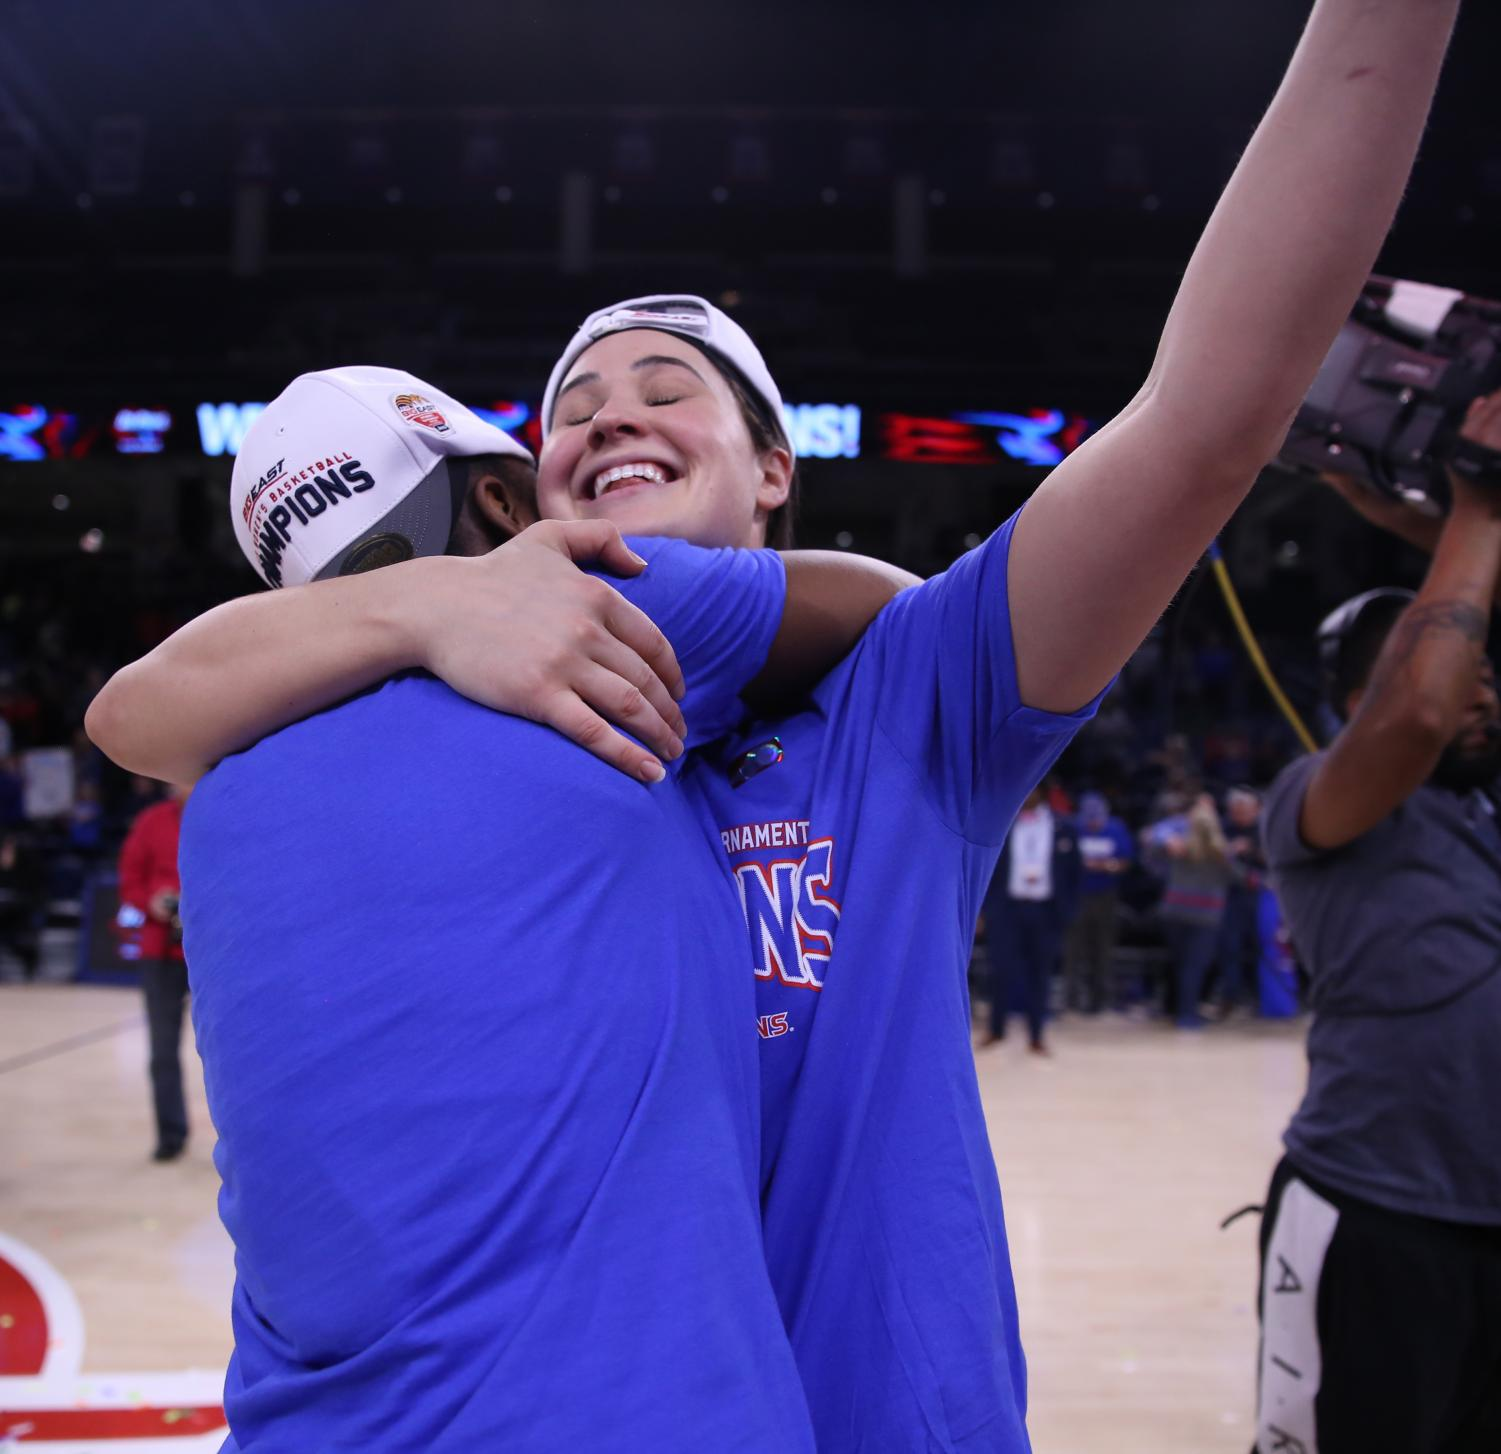 DePaul+senior+Rebekah+Dahlman+celebrates+with+a+teammate+after+the+Blue+Demons+punched+their+ticket+to+the+NCAA+Tournament.+Dahlman+appeared+in+just+one+game+last+season+as+DePaul+lost+to+Texas+A%26M+in+the+second+round+of+the+NCAA+Tournament.+Alexa+Sandler+%7C+The+DePaulia+